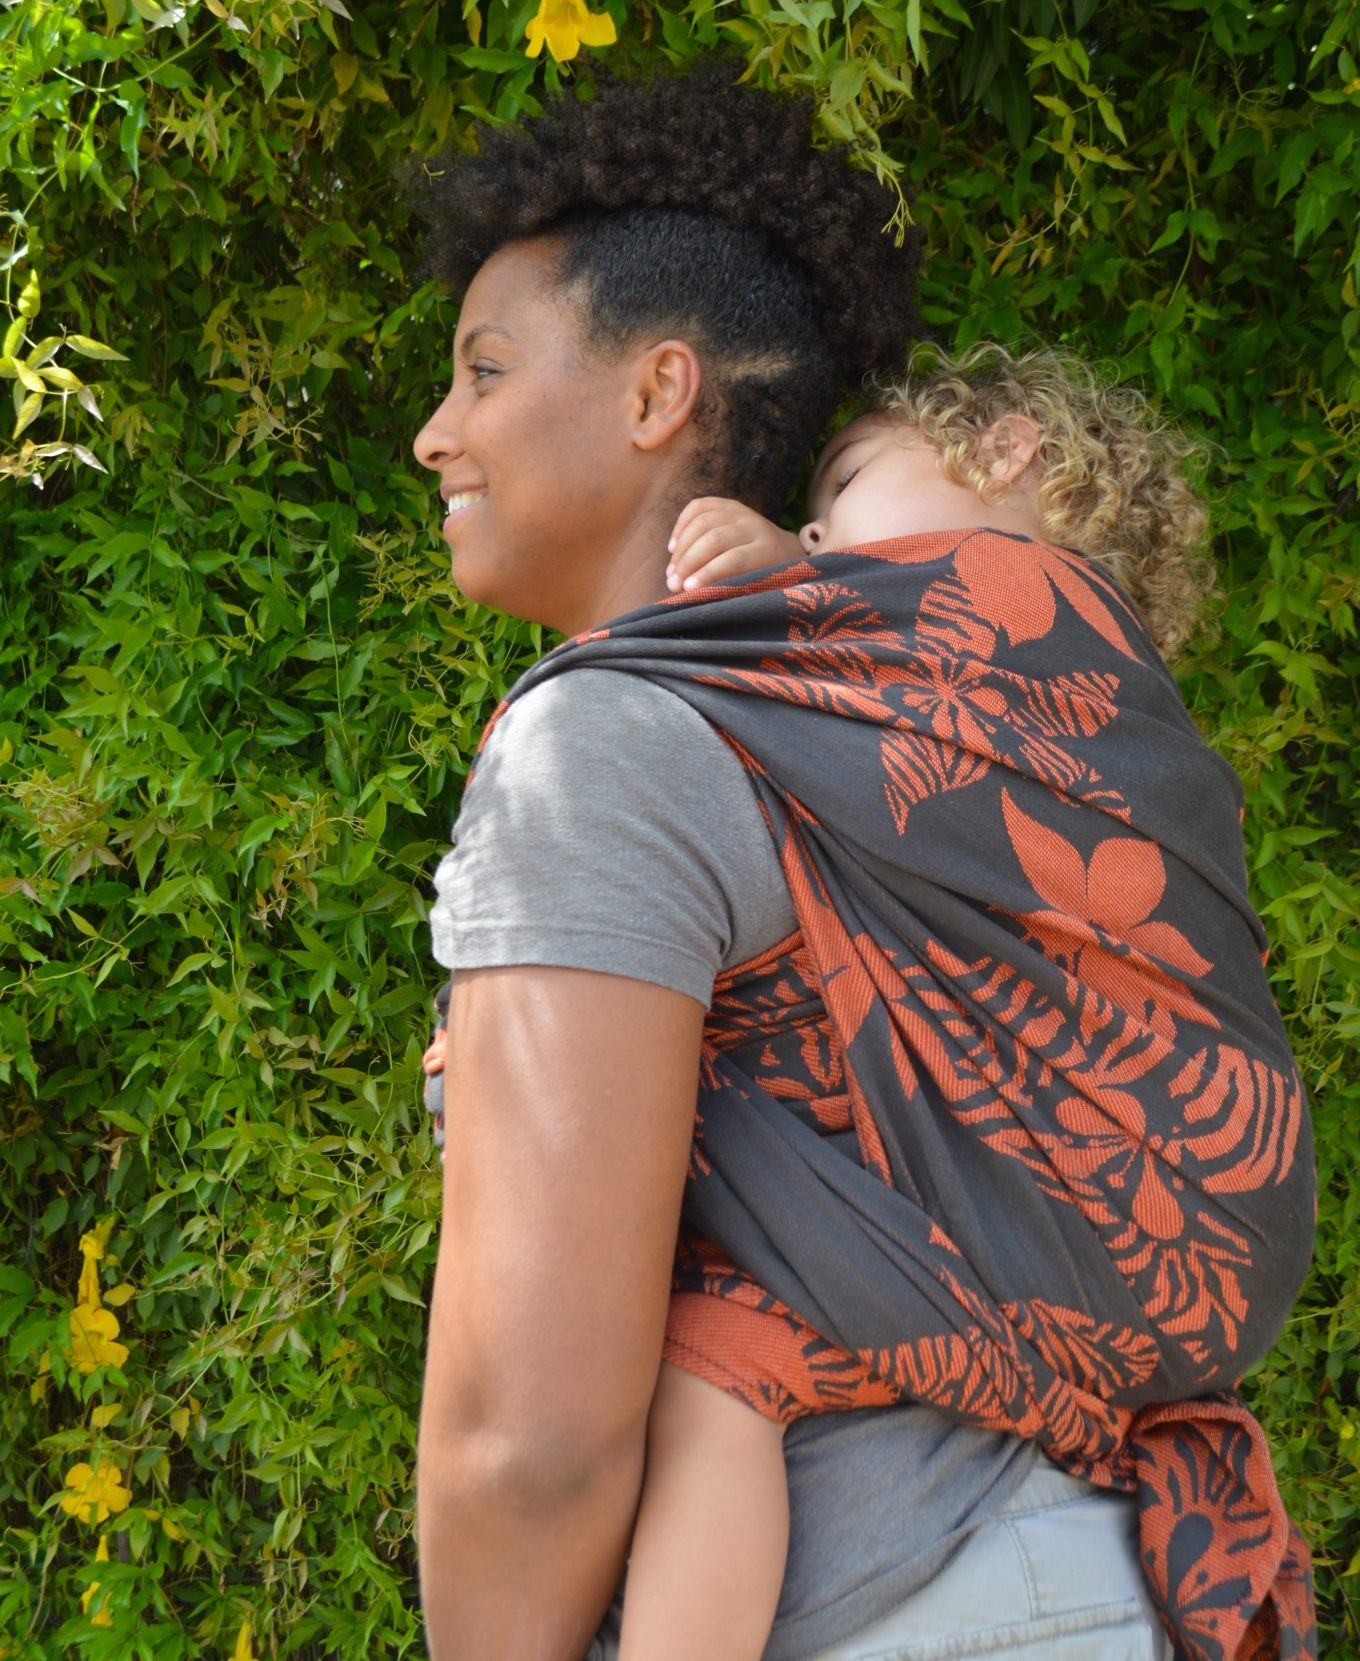 Momma wears blond curly haired toddler on her back in a black wrap with orange flowers. Baby is sleeping and Momma is smiling, looking off in the diistance